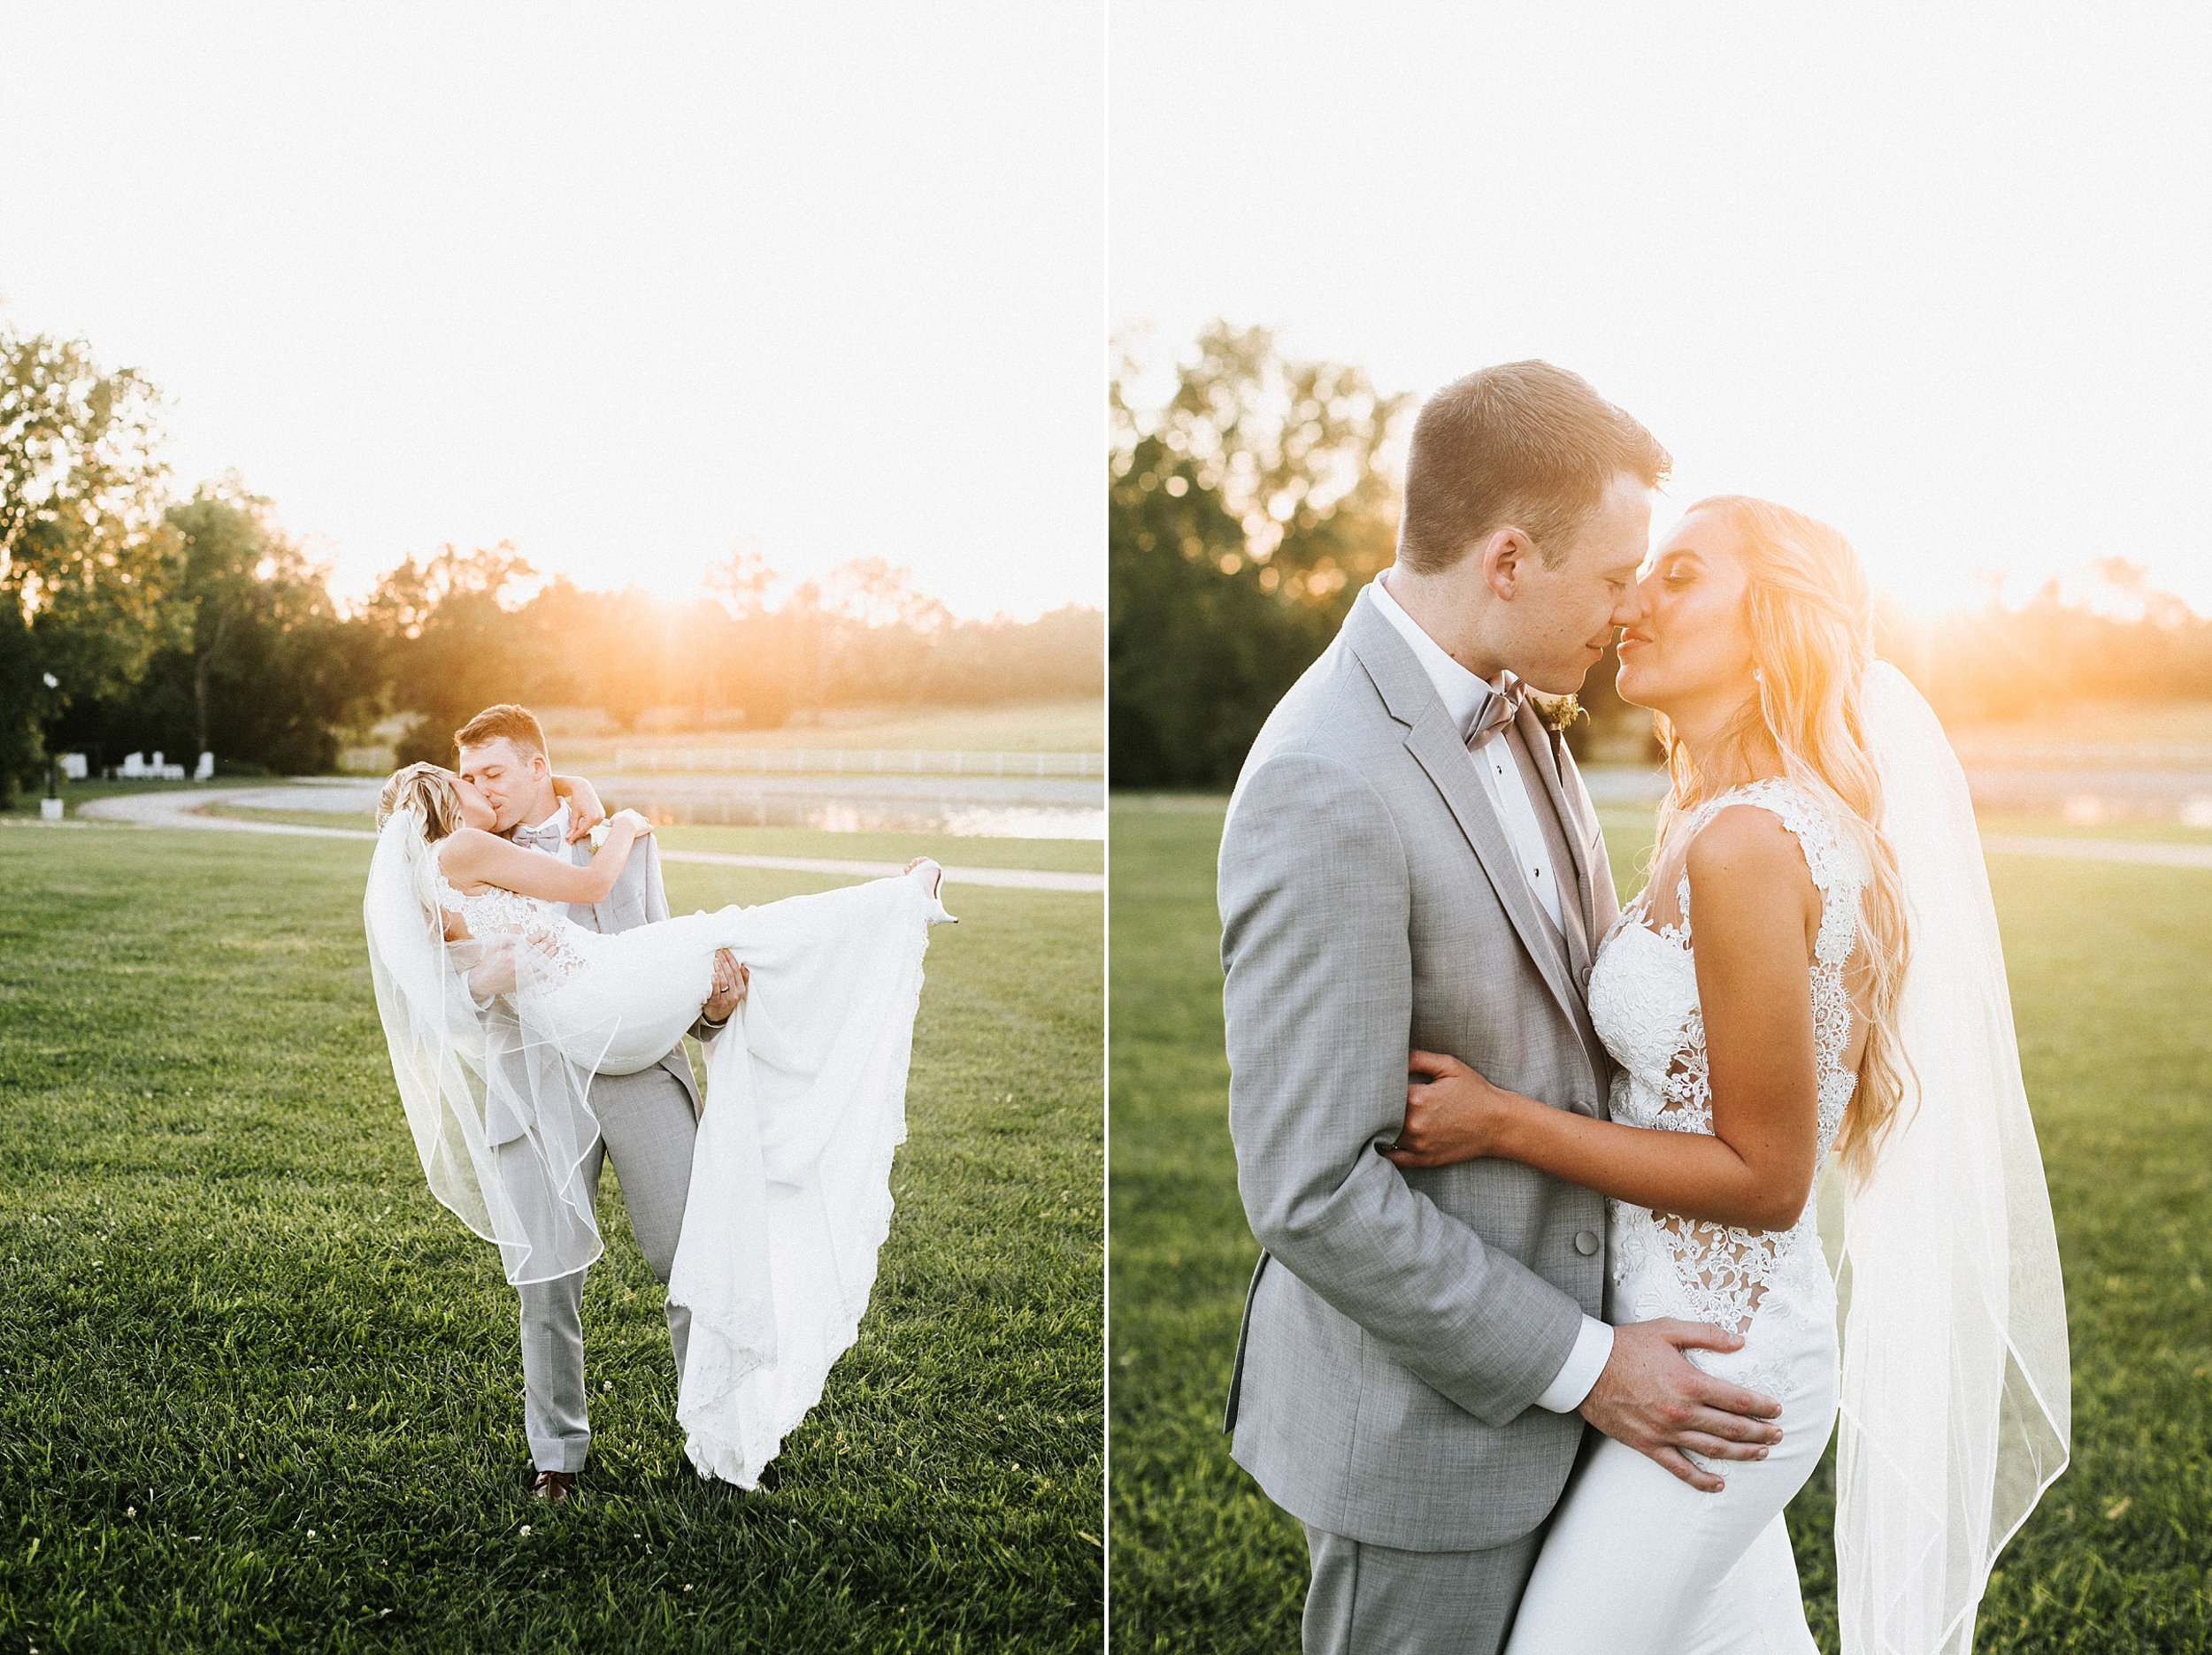 Brooke Townsend Photography - Cincinnati Wedding Photographer (201 of 230).jpg